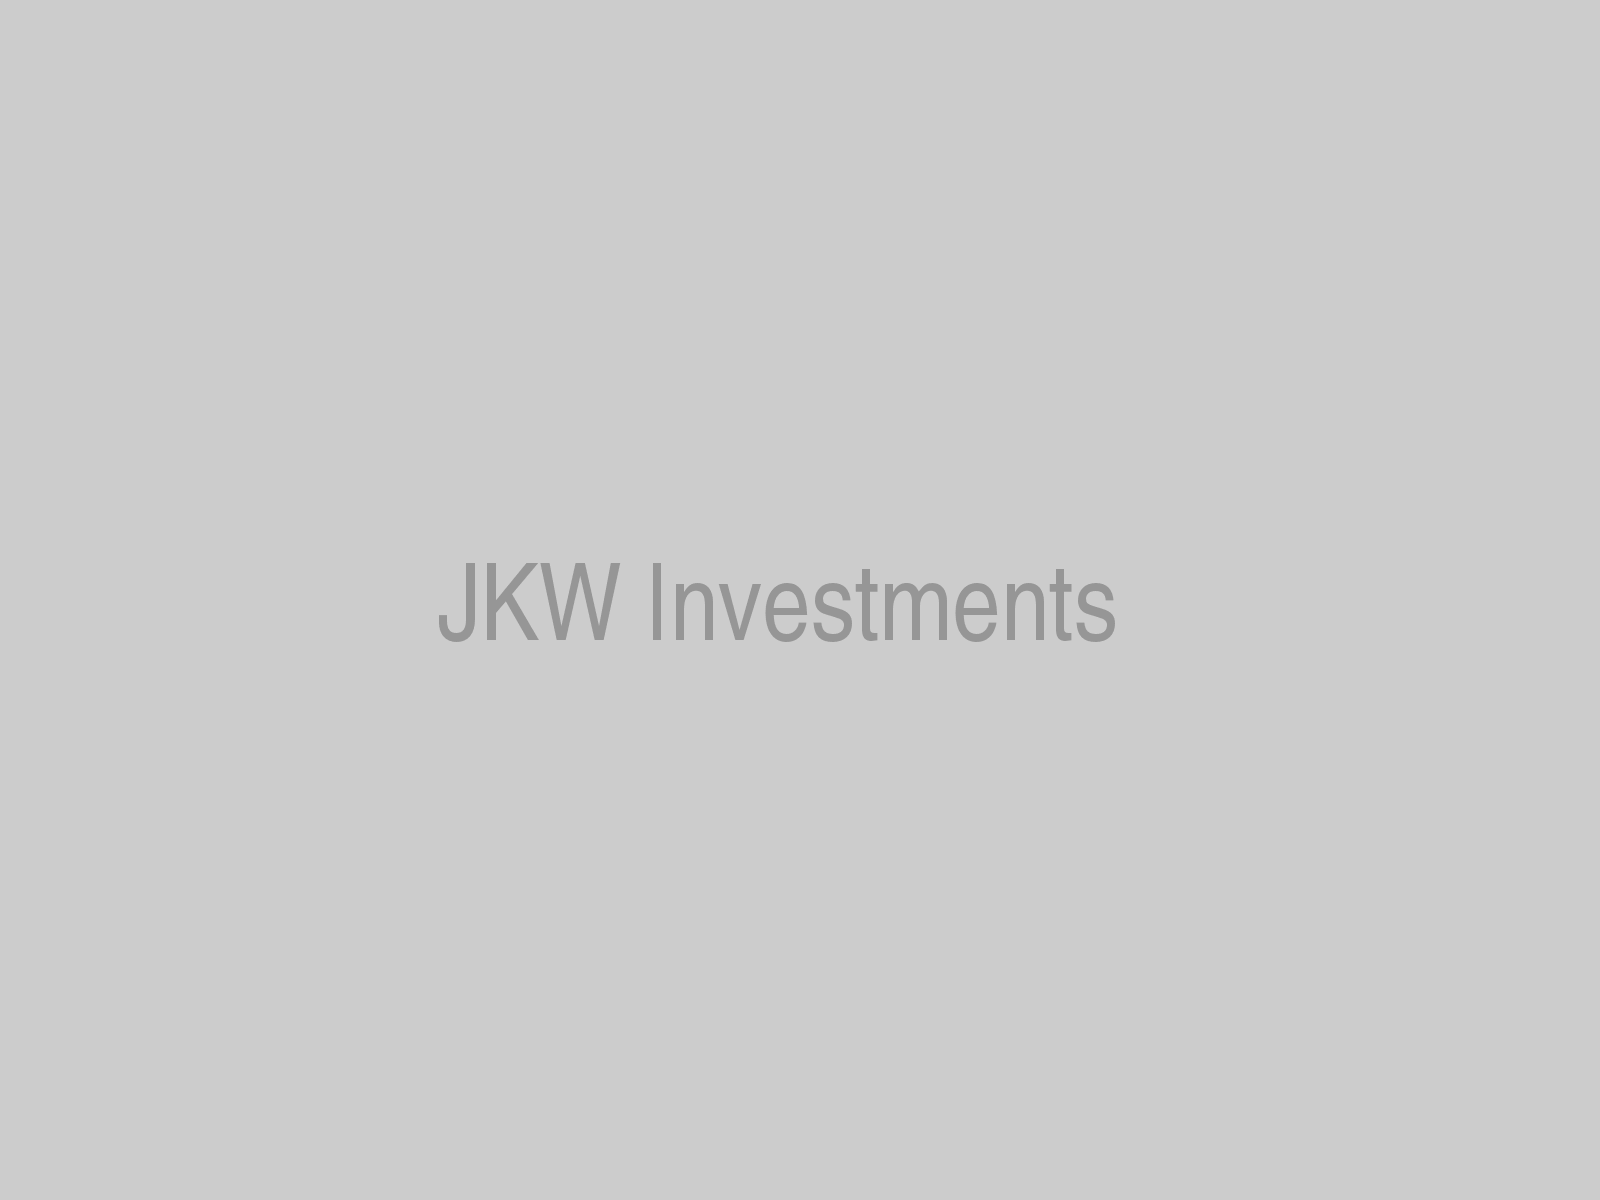 JKW Investments